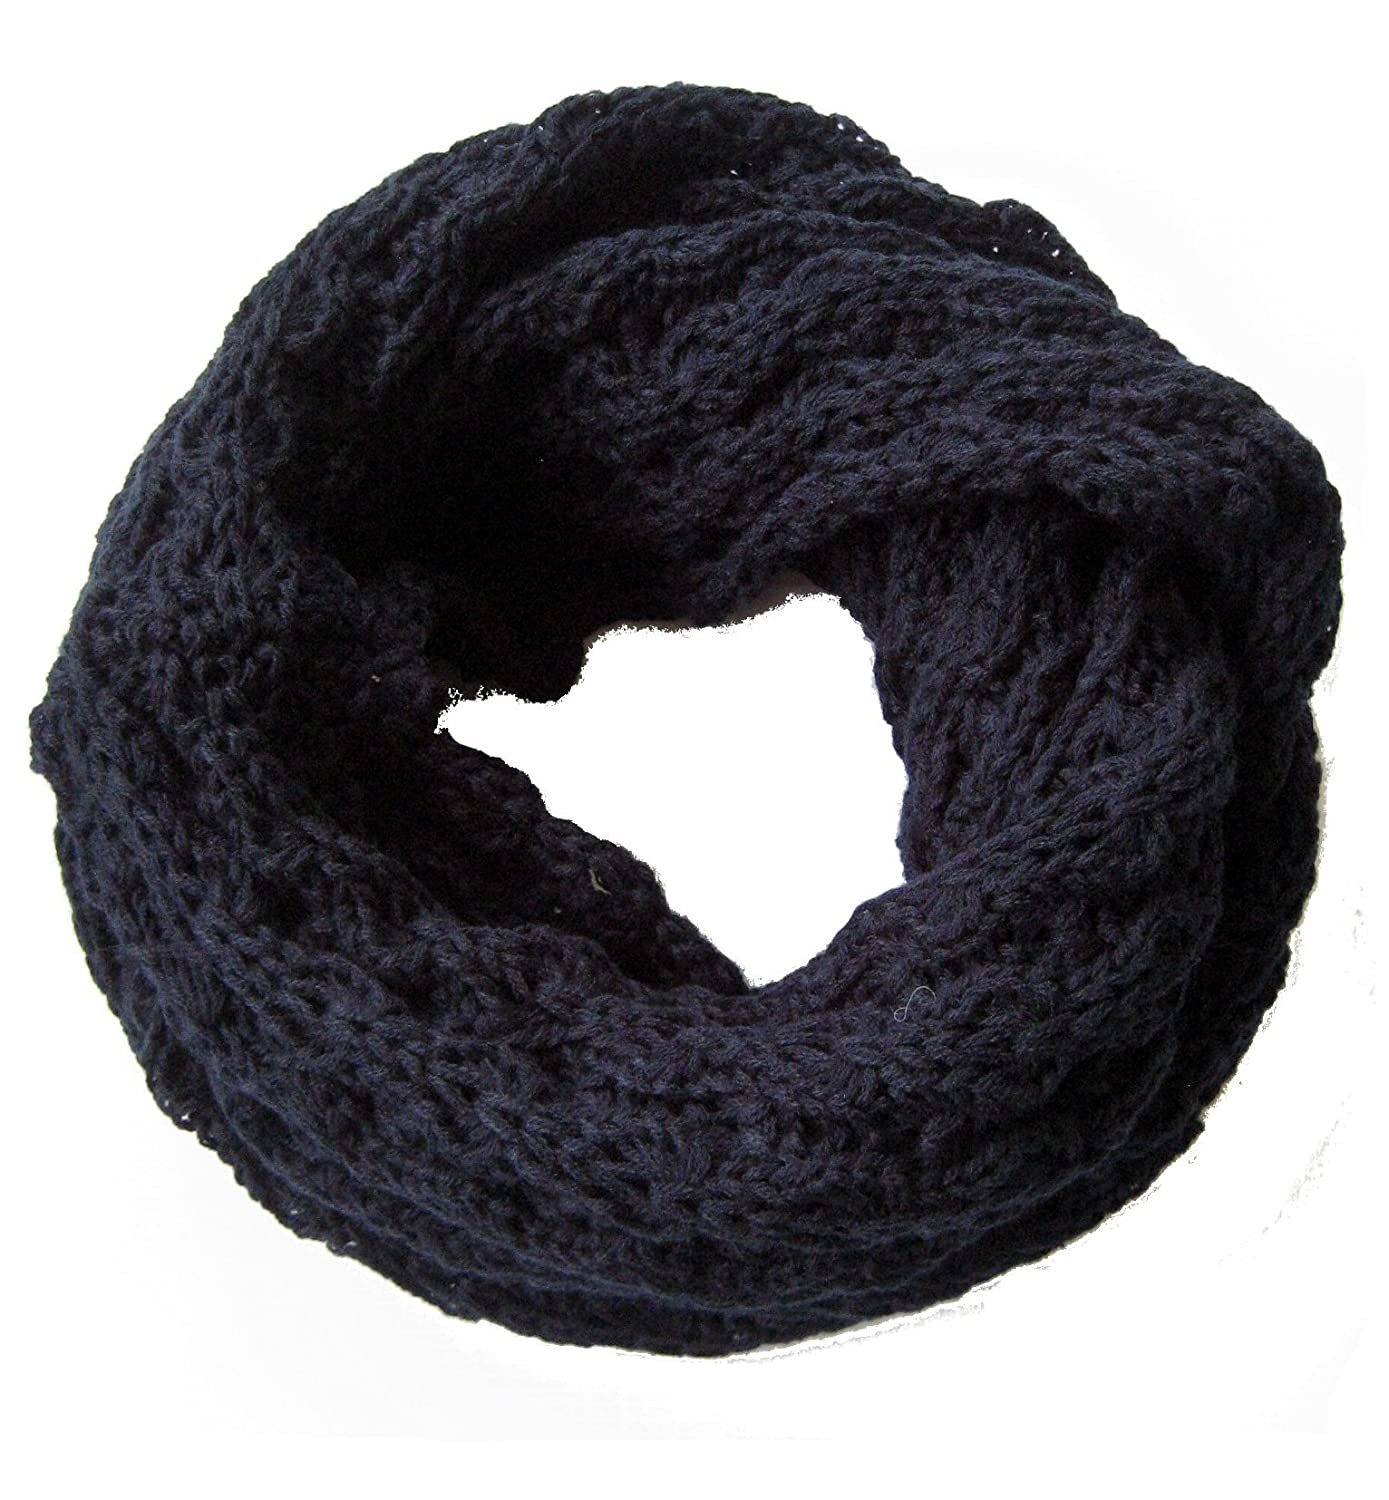 Frost Hats Winter Infinity Scarf for Women IS-1 Knitted Loop Scarf ...